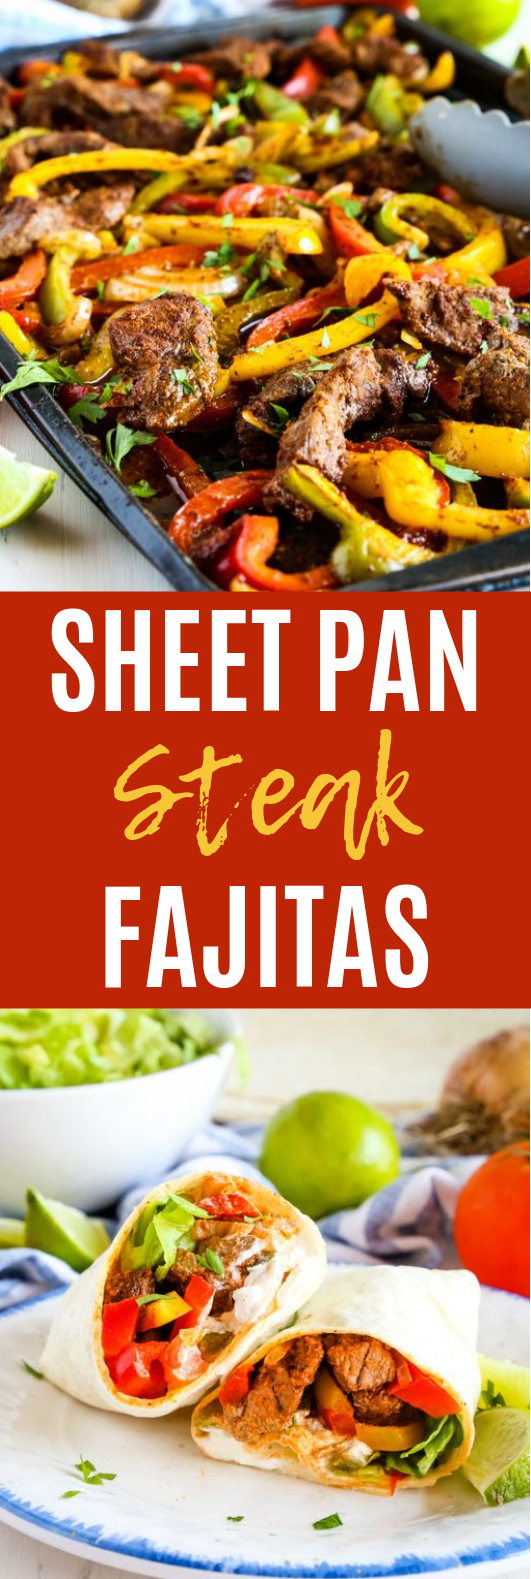 Sheet Pan Steak Fajitas #lowcarb #paleo